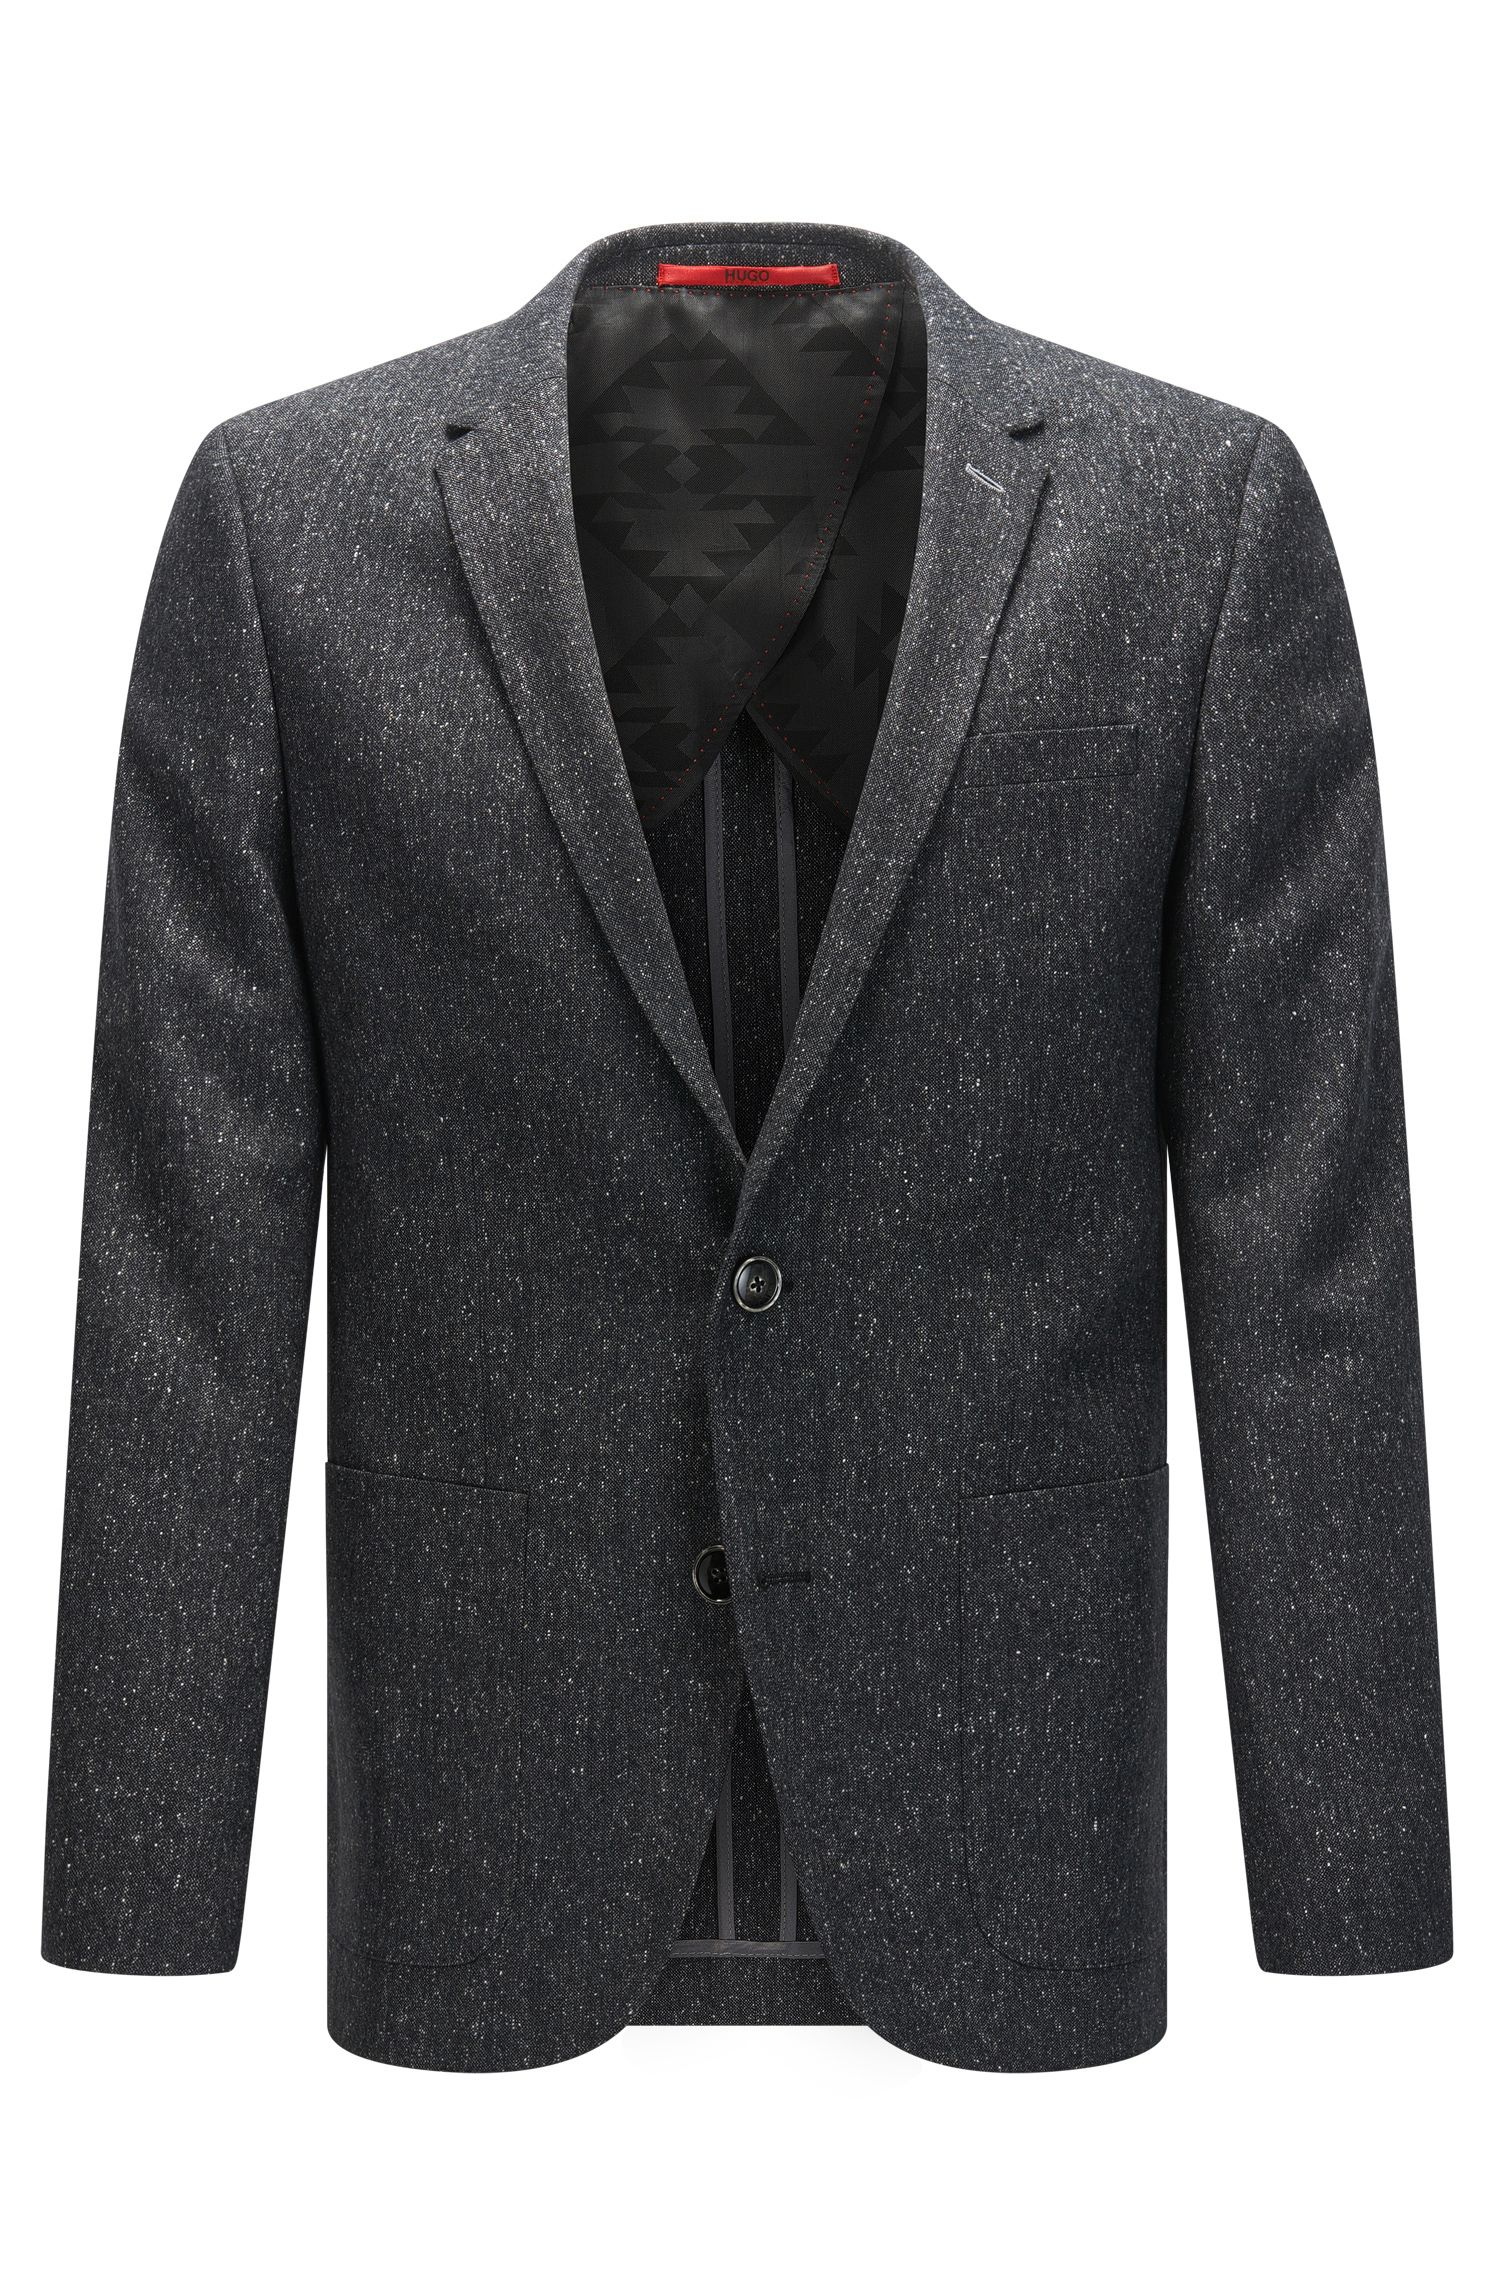 Slim-fit jacket in a flecked virgin wool blend